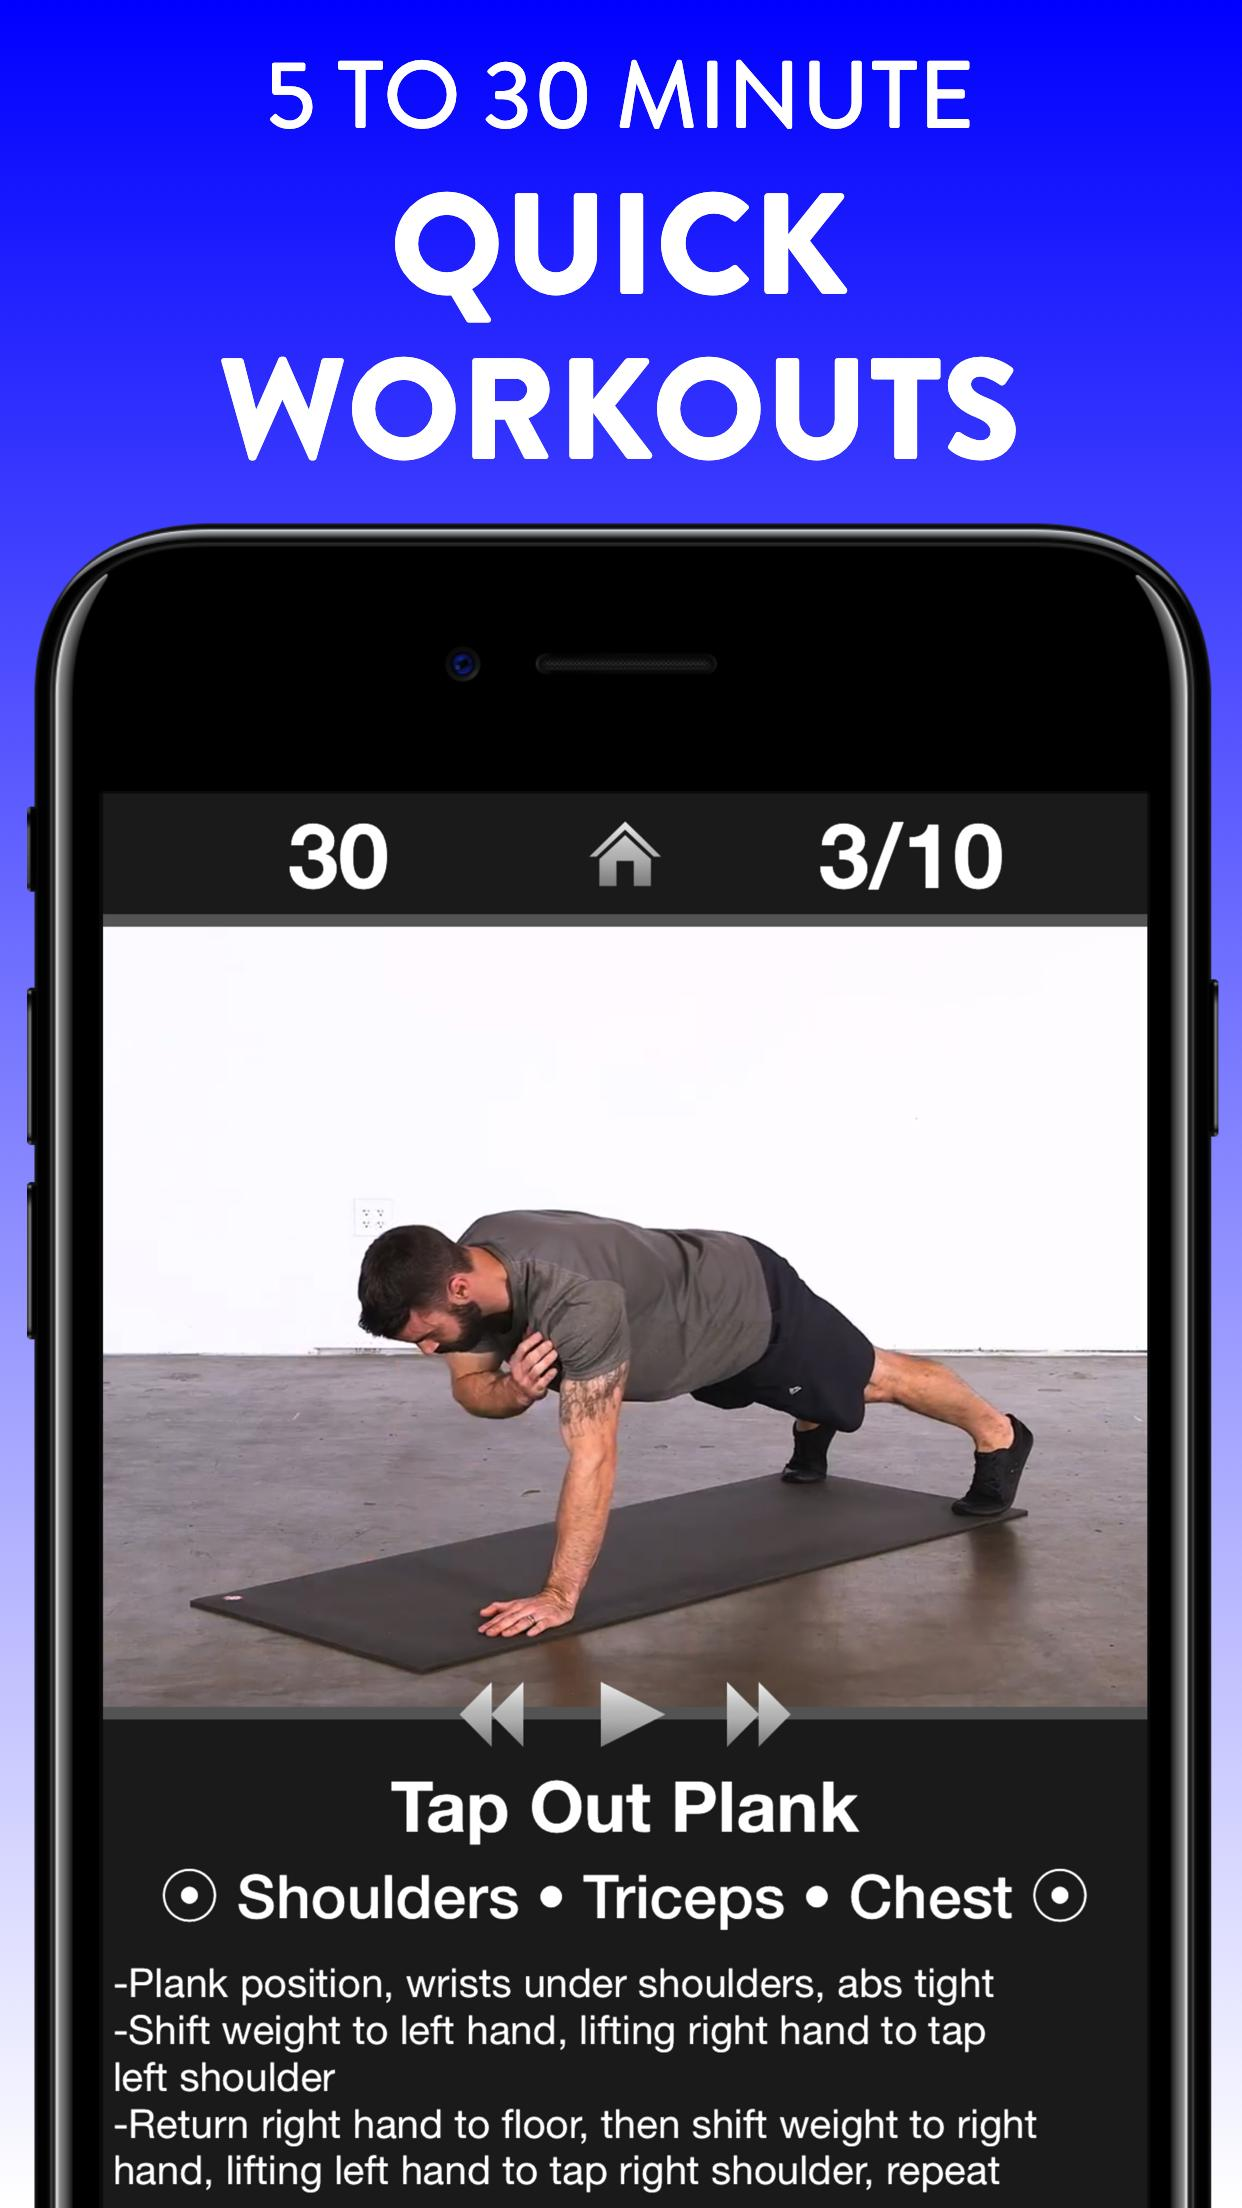 Daily Workouts - Exercise Fitness Workout Trainer 6.12 Screenshot 13